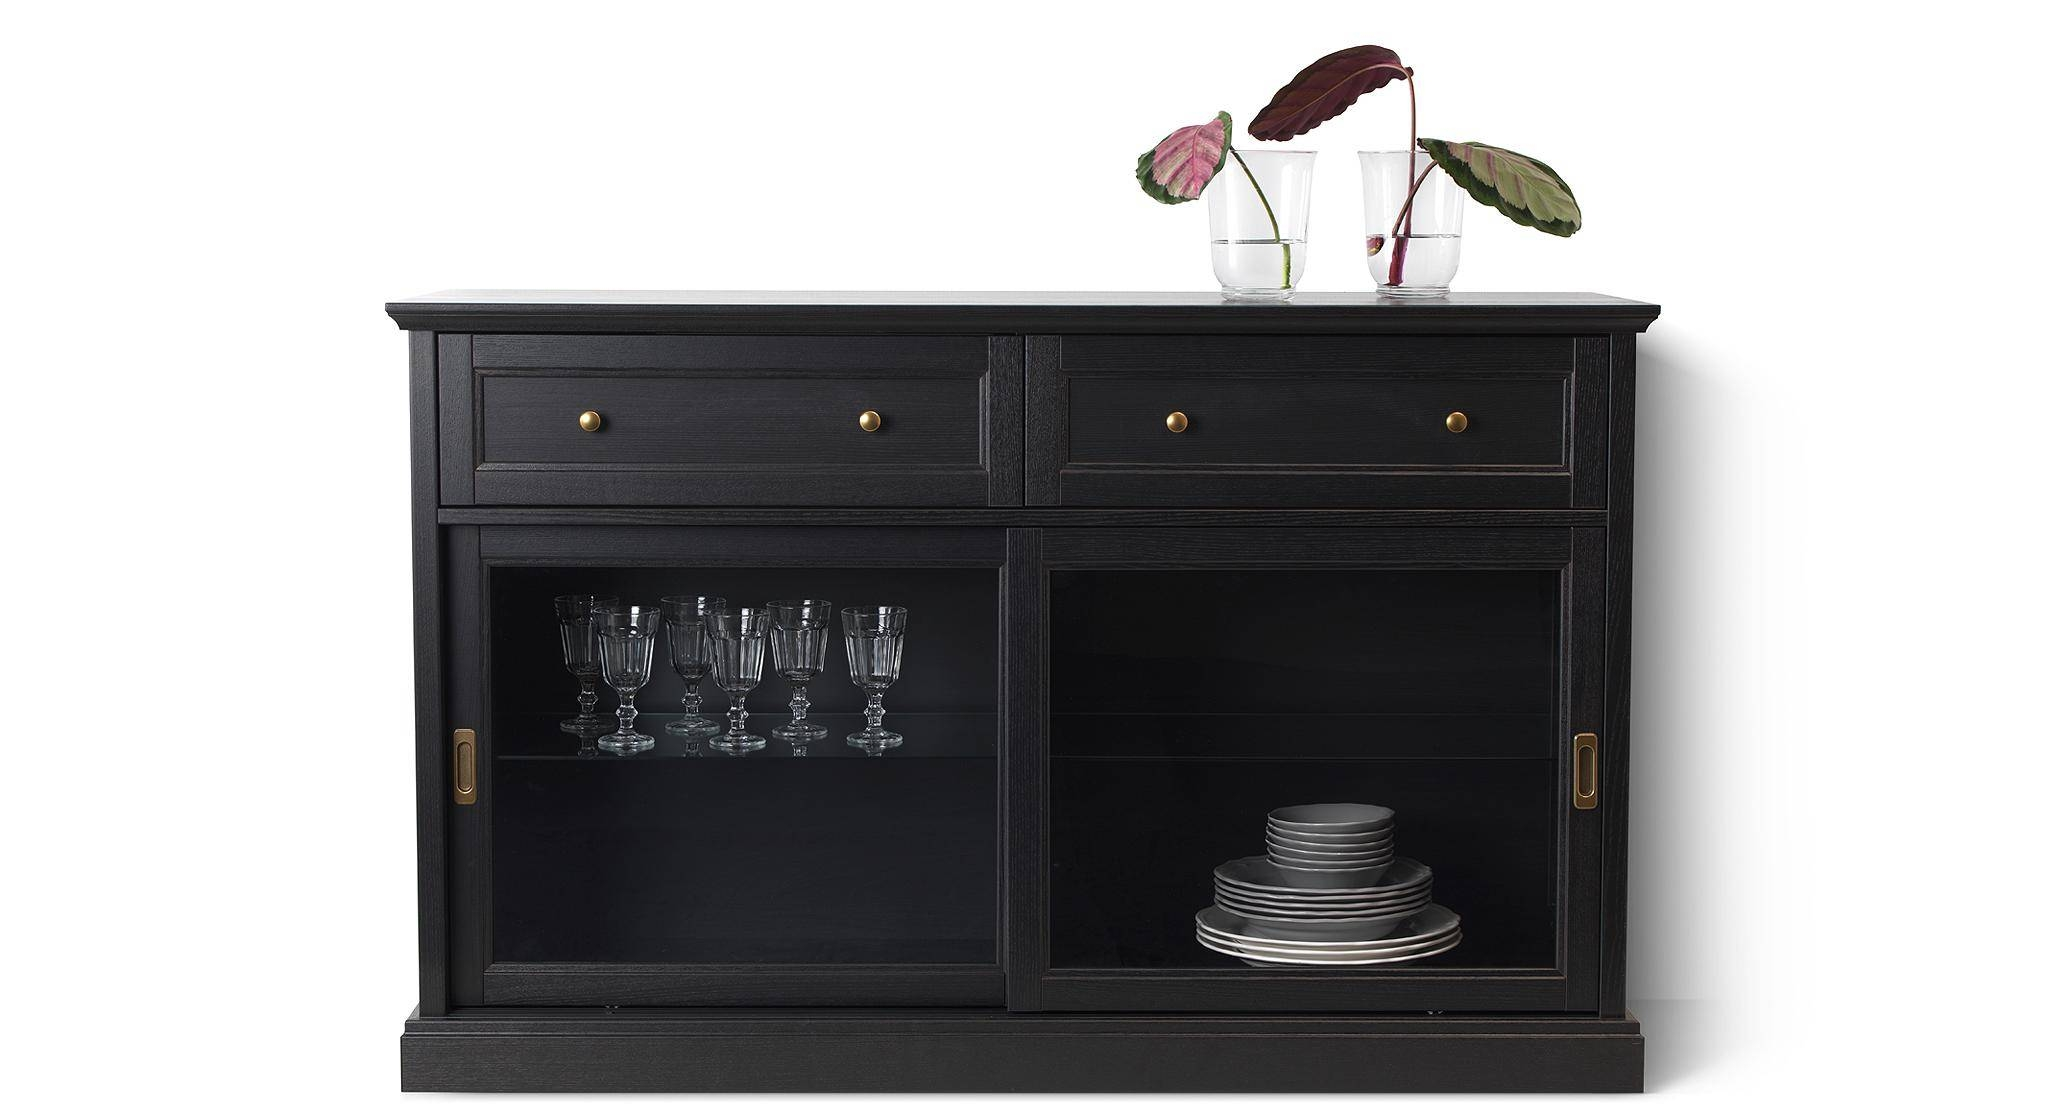 Sideboards & Buffet Cabinets | Ikea for Off White Sideboards (Image 13 of 15)